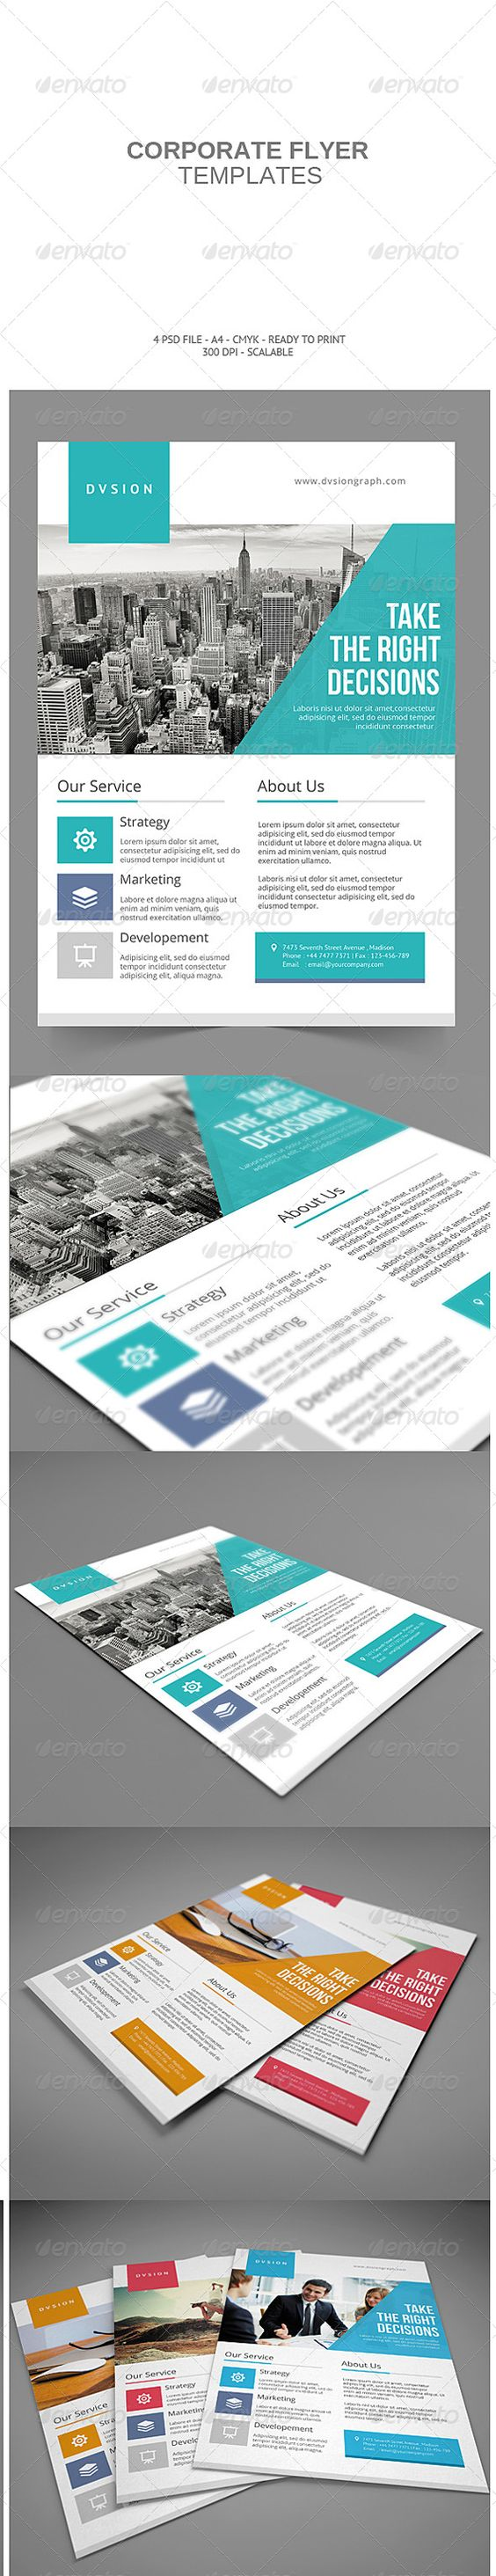 buy brochure templates - corporate flyer love the design and clean web design